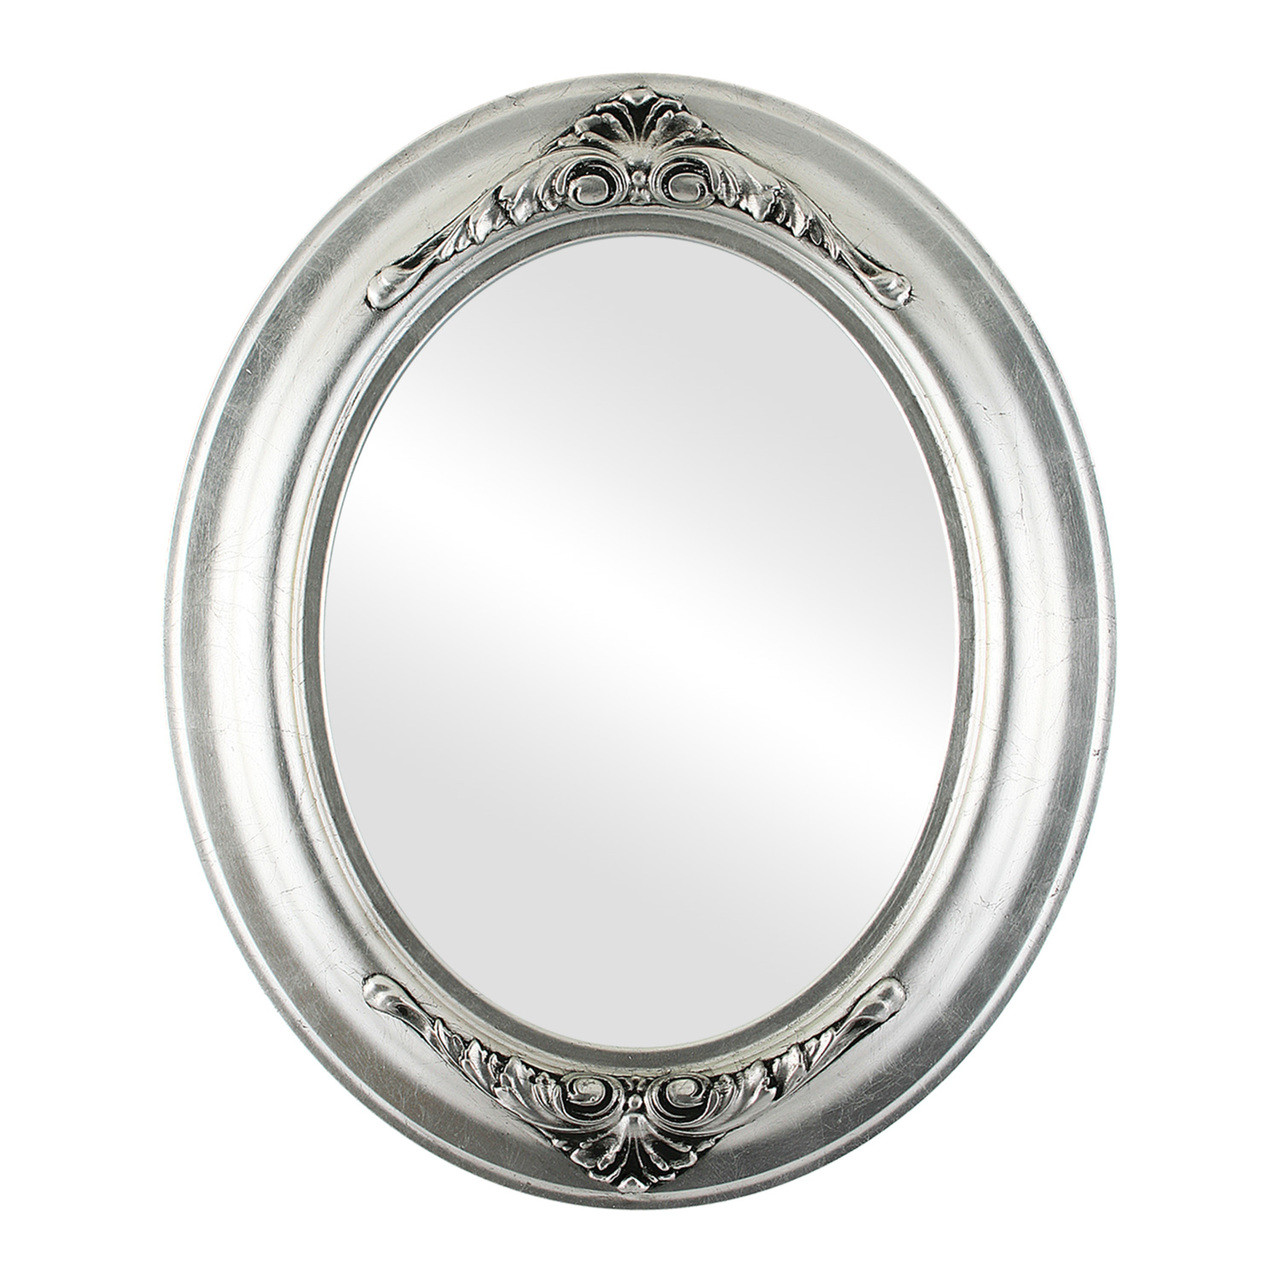 Vintage Silver Oval Mirrors From 164 Free Shipping